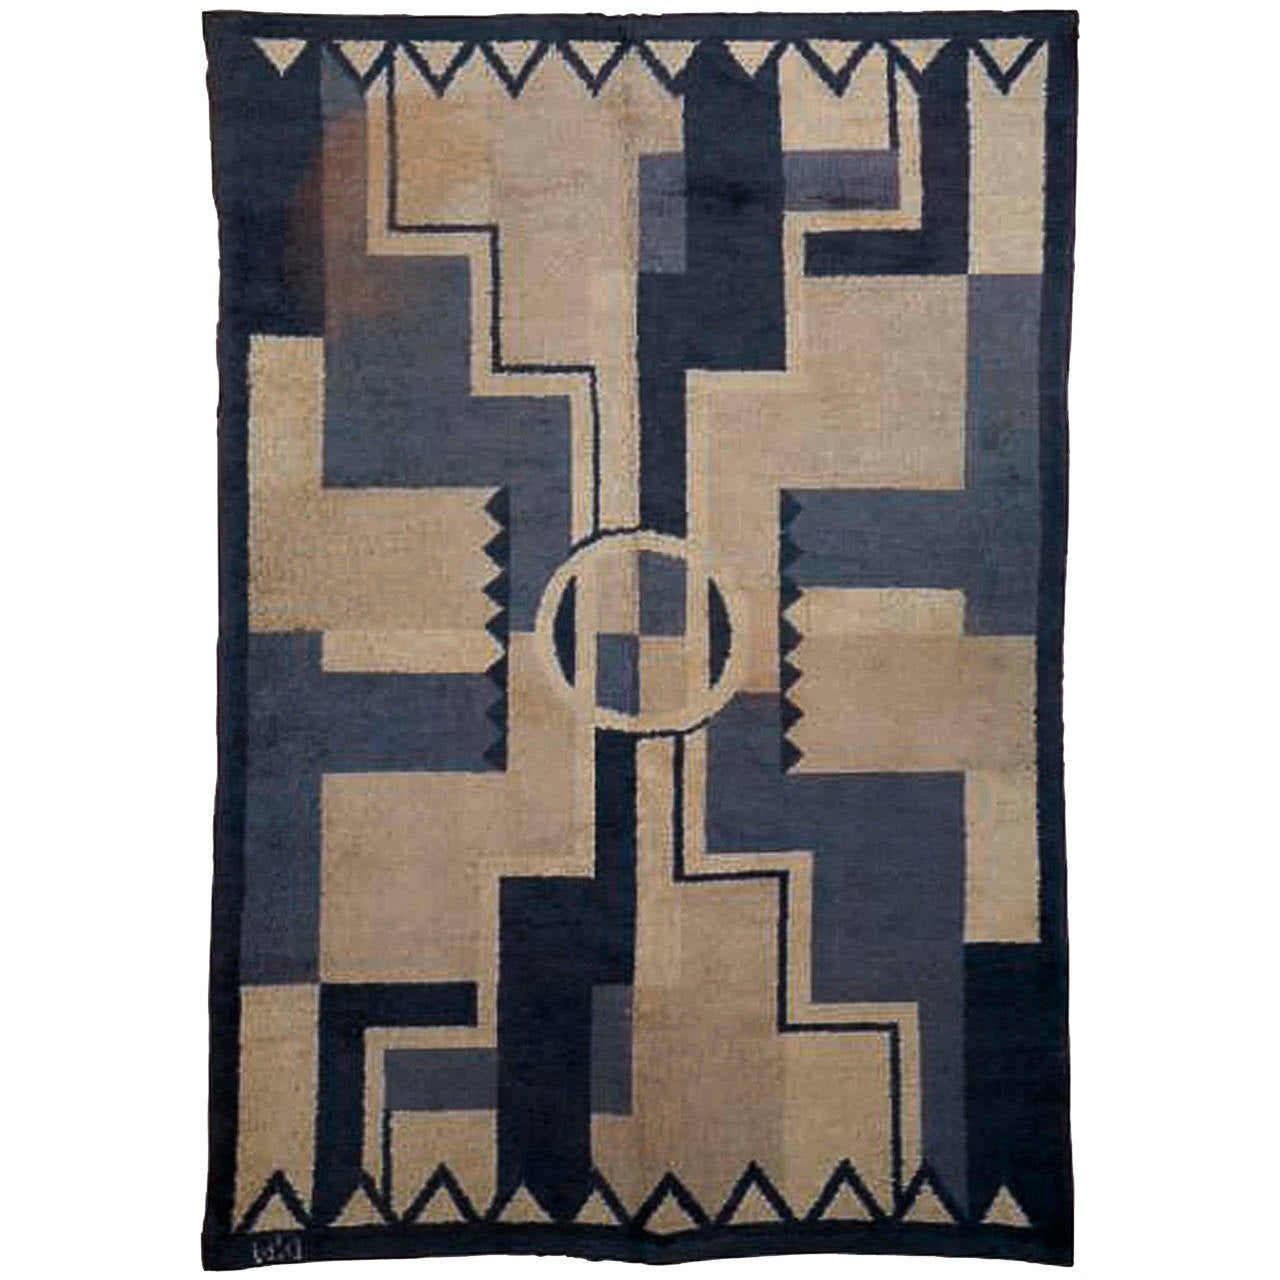 French art deco rug at 1stdibs for European art deco